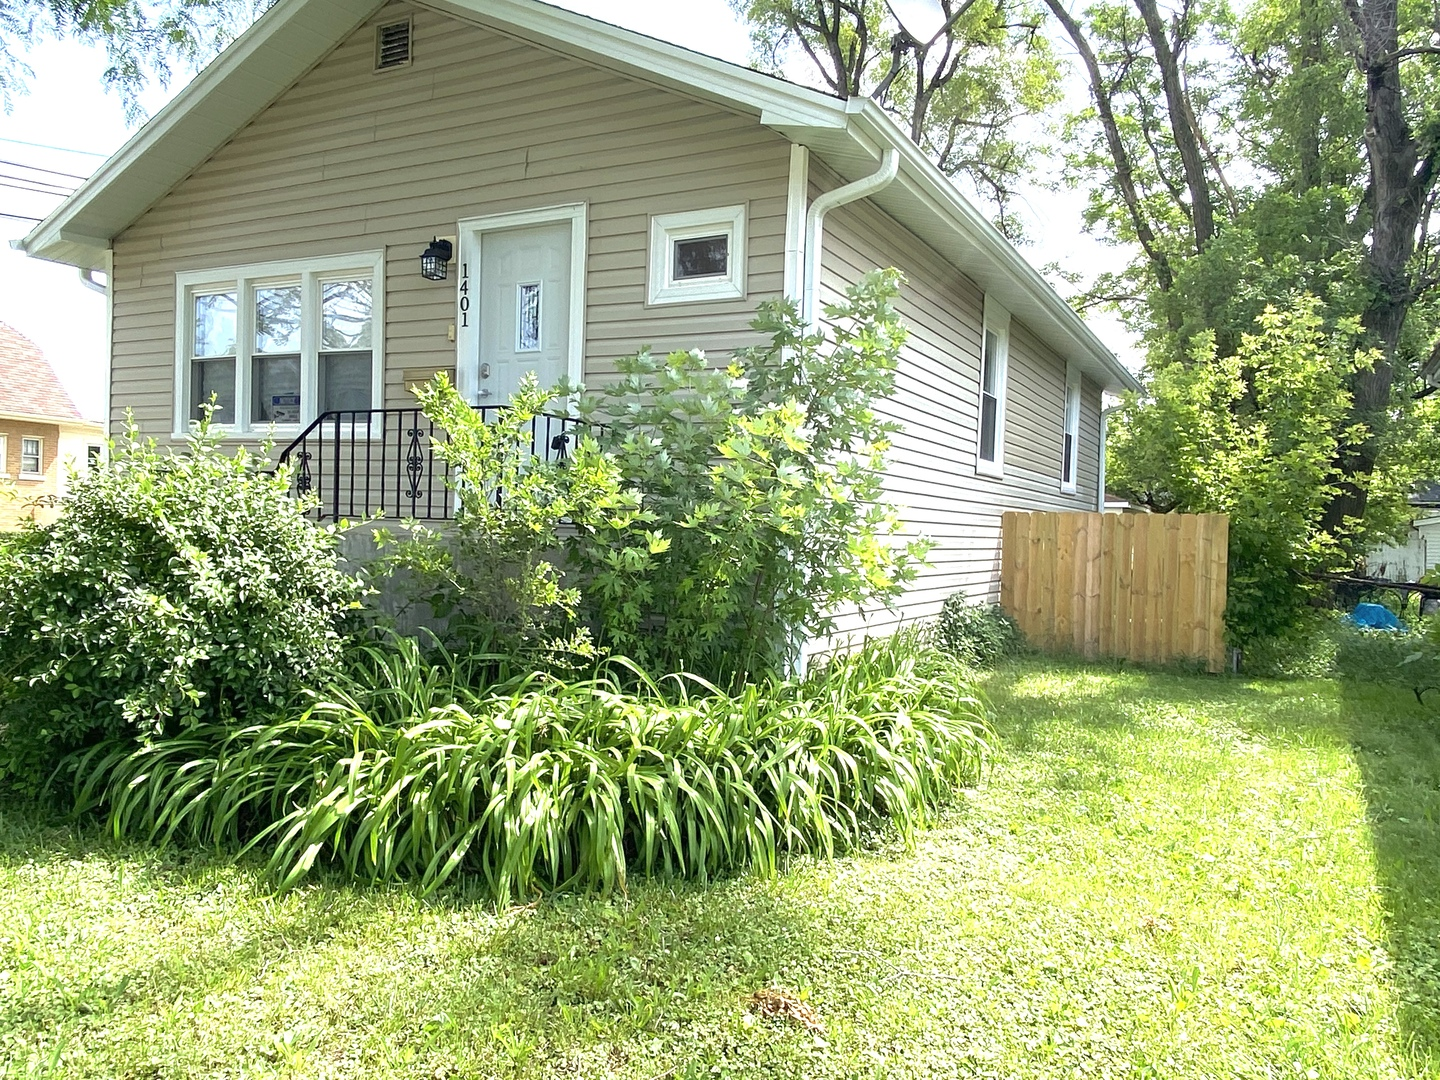 Photo for 1401 S 20th Avenue, Maywood, IL 60153 (MLS # 10763381)